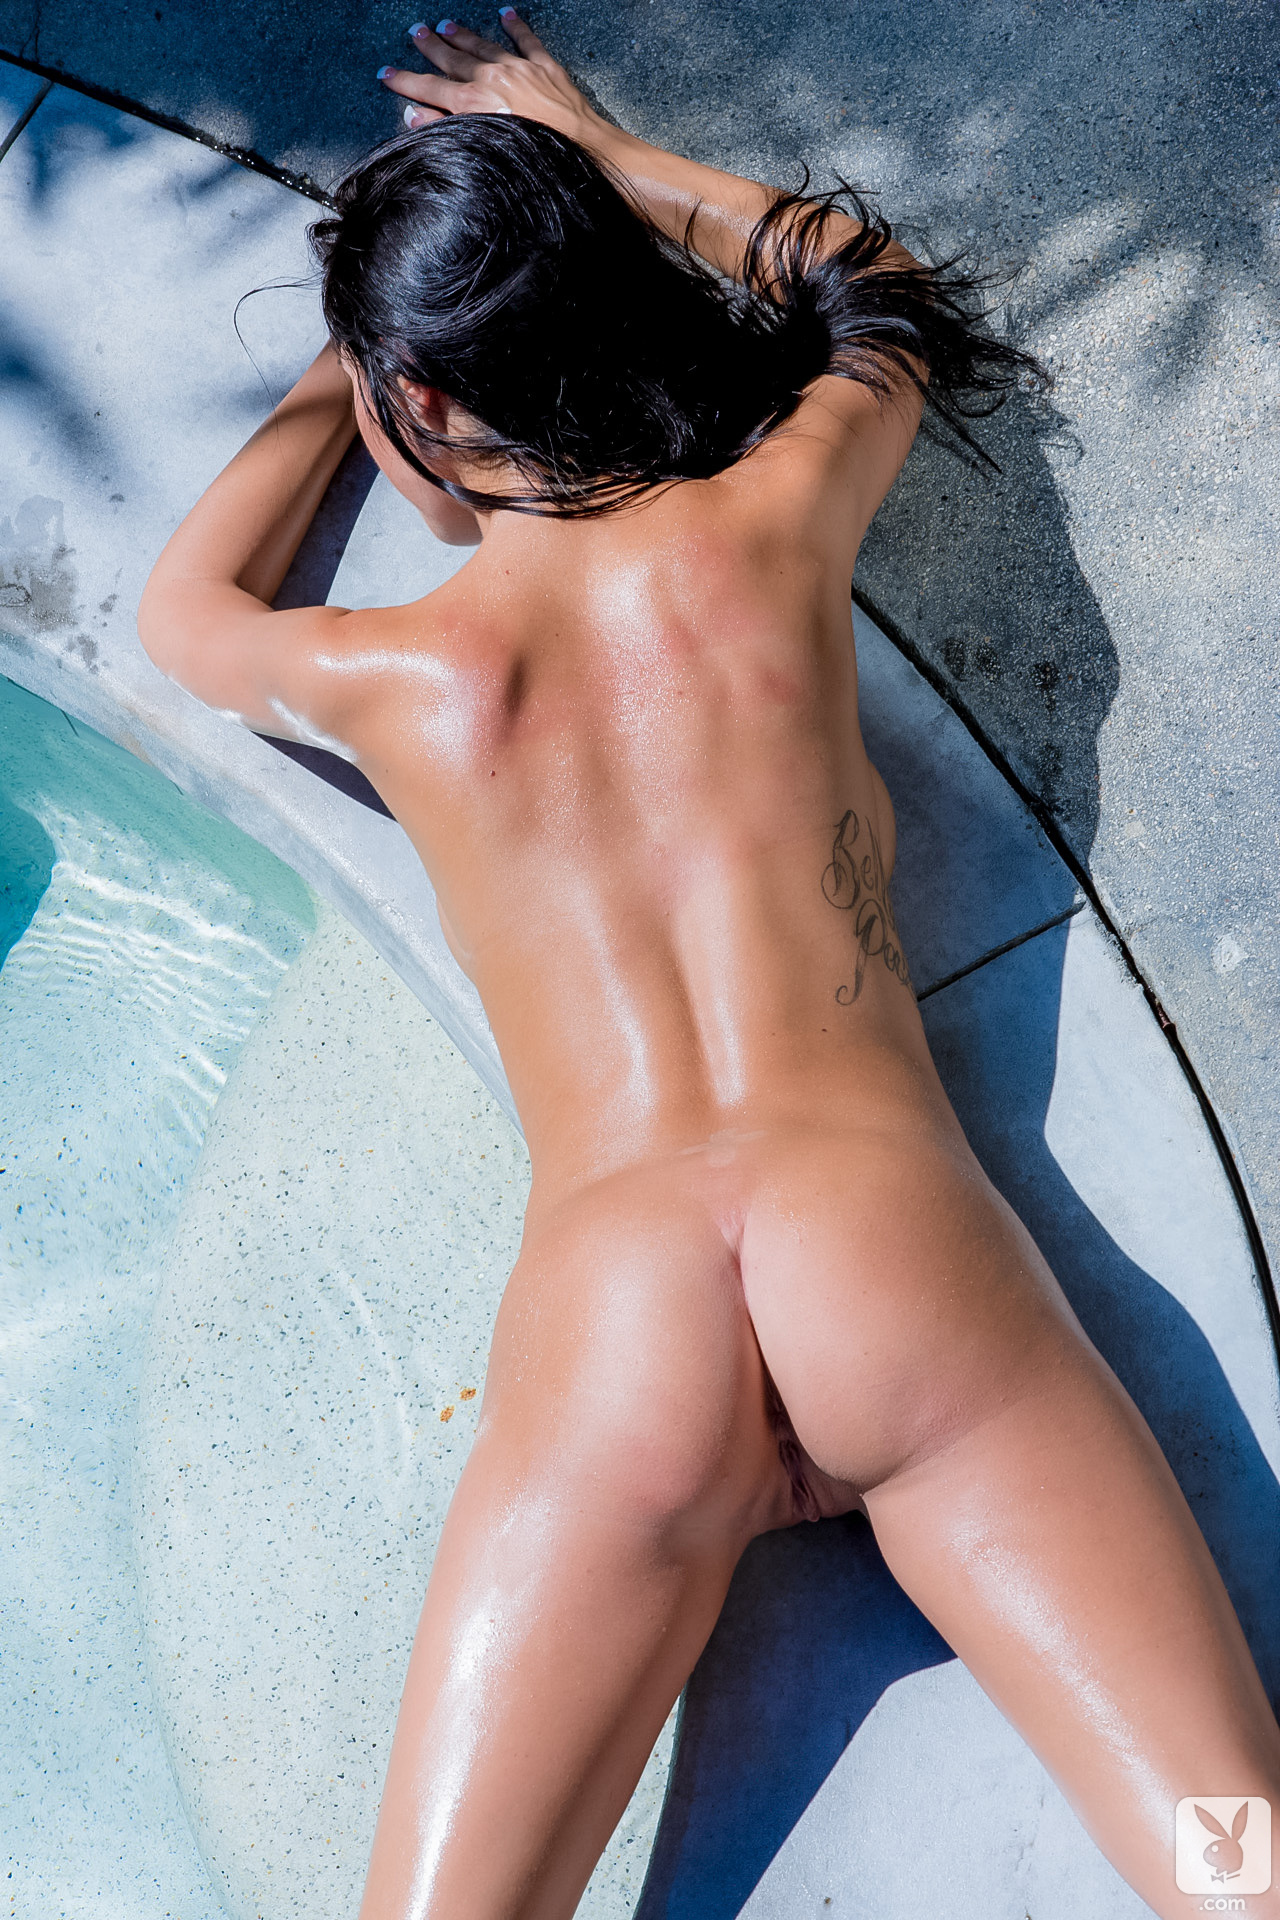 Playboy cybergirls nude oiled, bollywood girls fuck pic